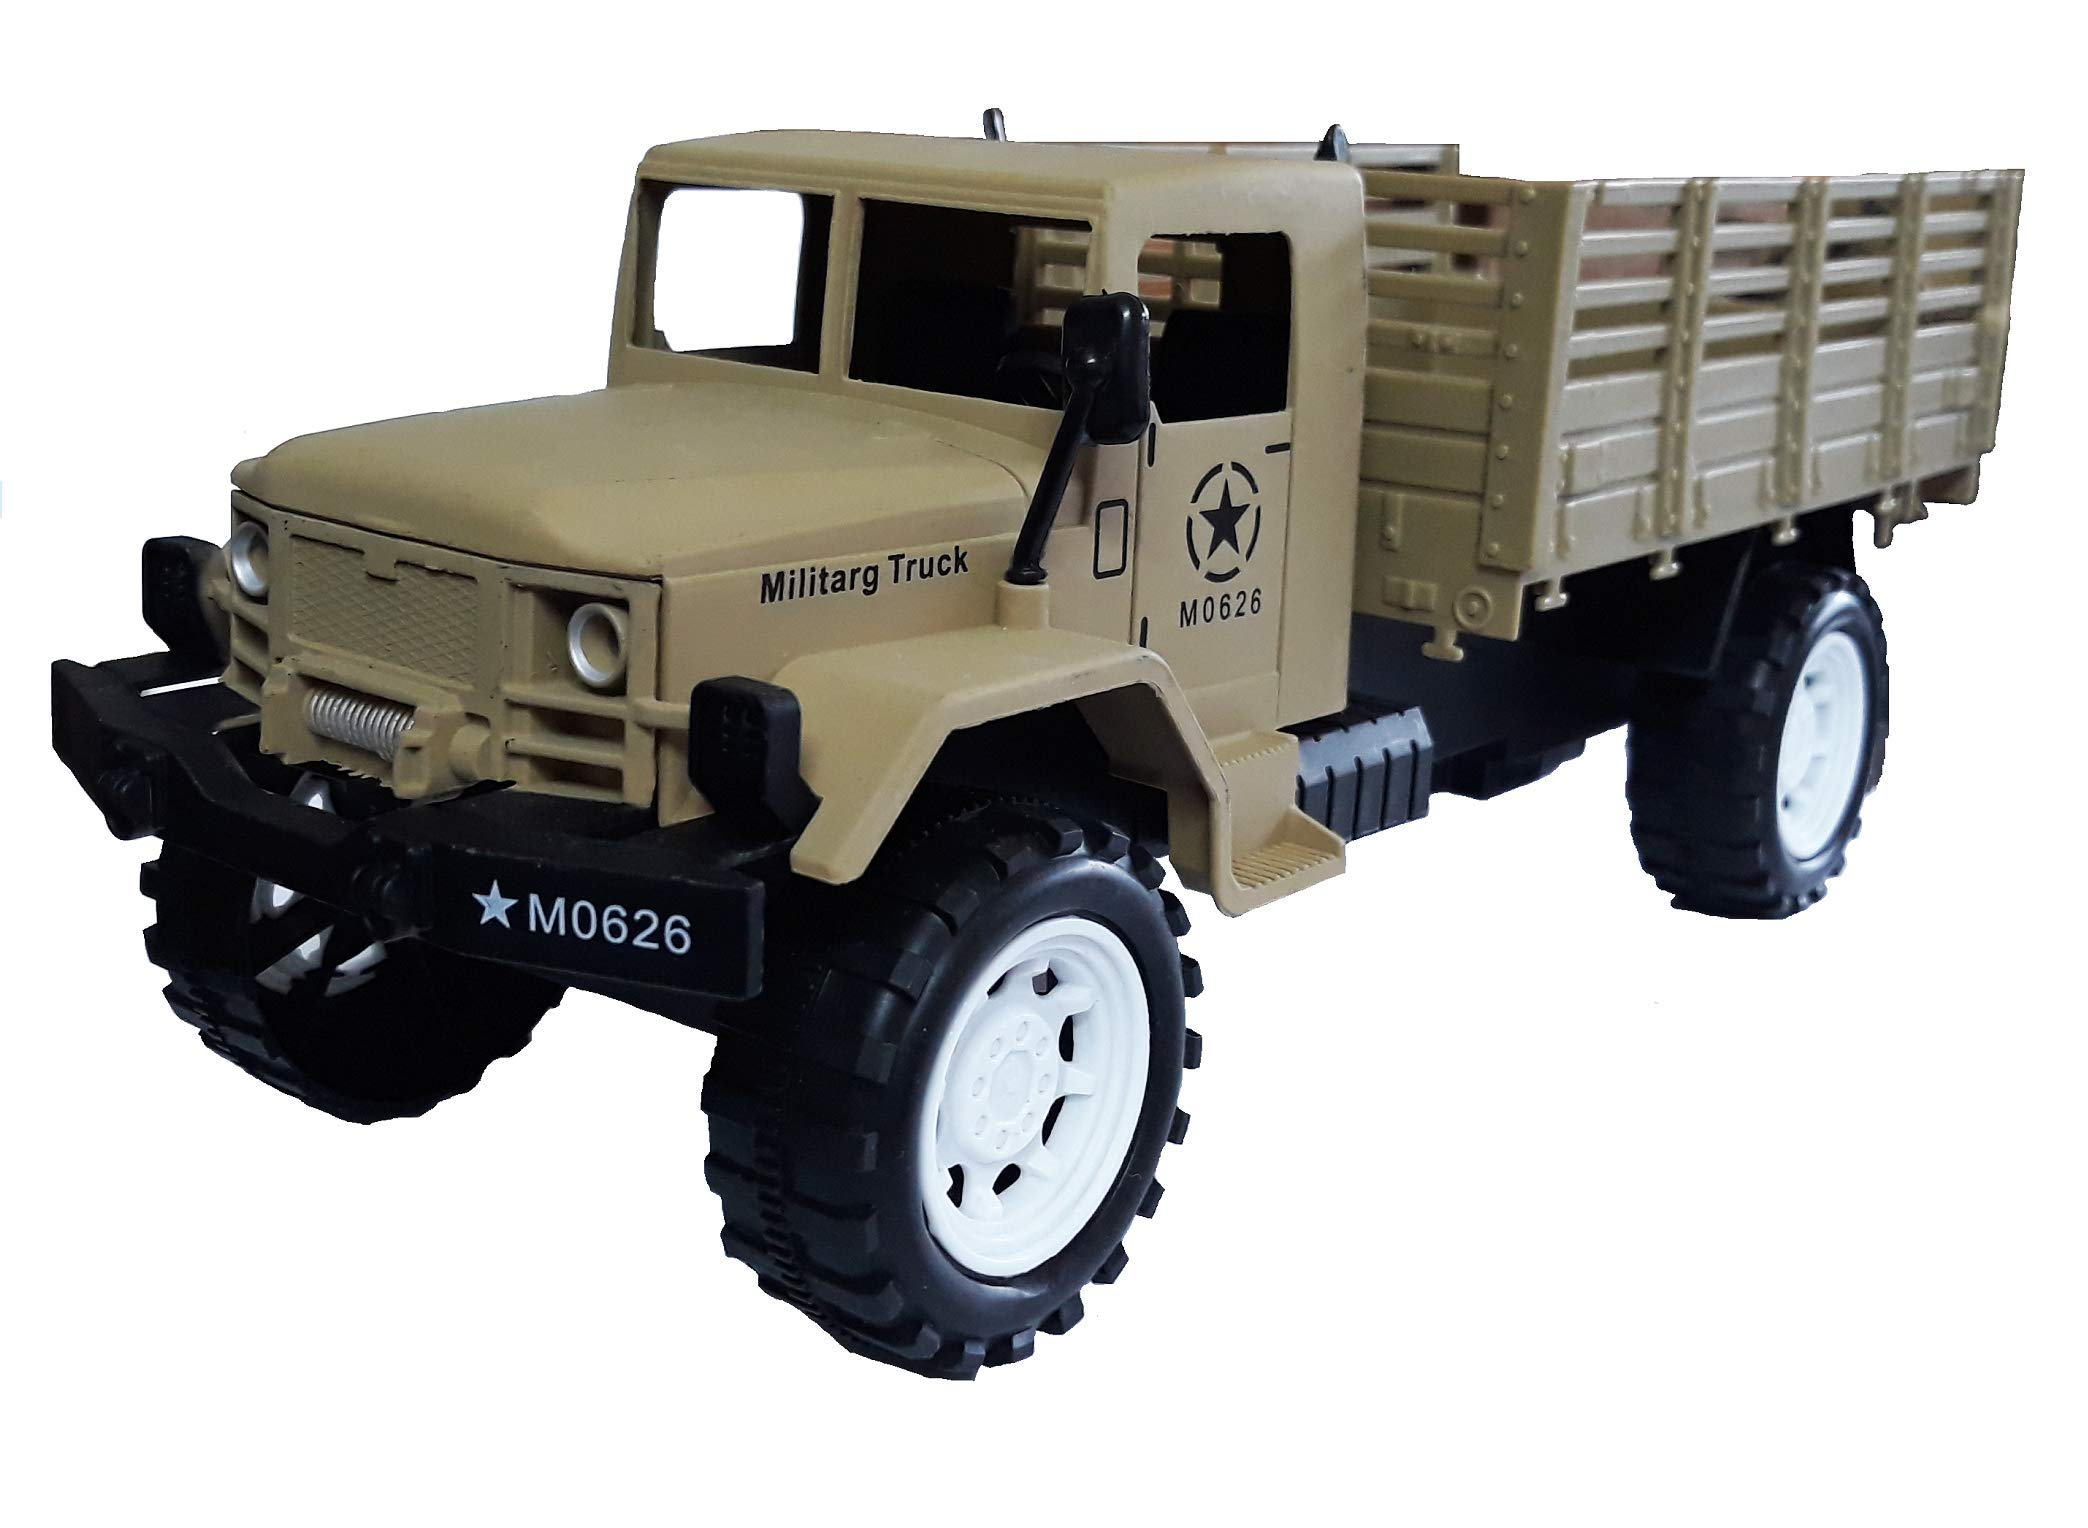 SUPER TOY US Army Military Truck Dumper Toy for Kids (Multi-Color) (B07X3H5MQ4) Amazon Price History, Amazon Price Tracker